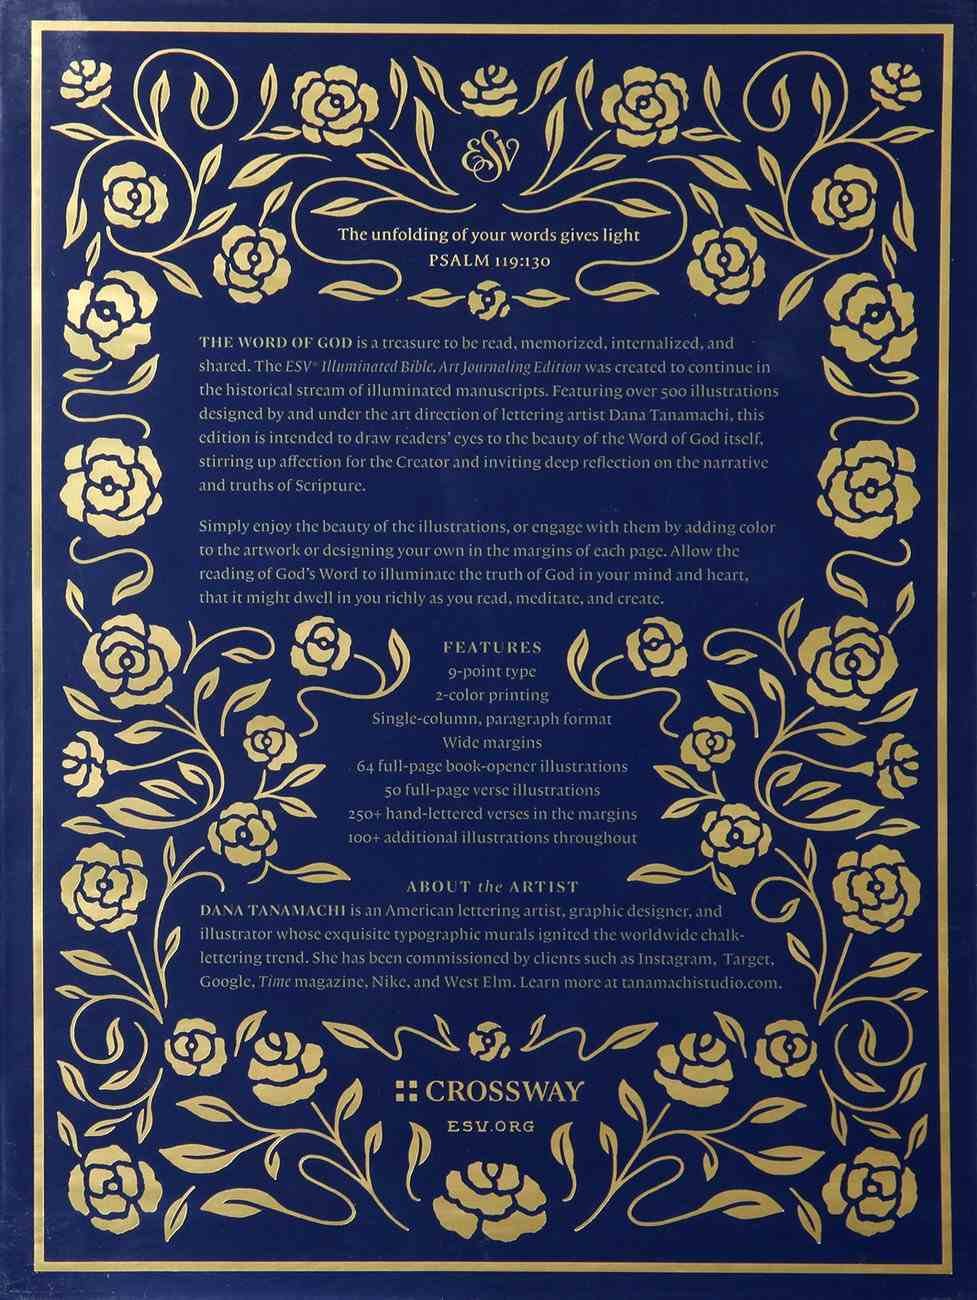 ESV Illuminated Bible Art Journaling Edition Blue With Slipcase (Black Letter Edition) Fabric Over Hardback